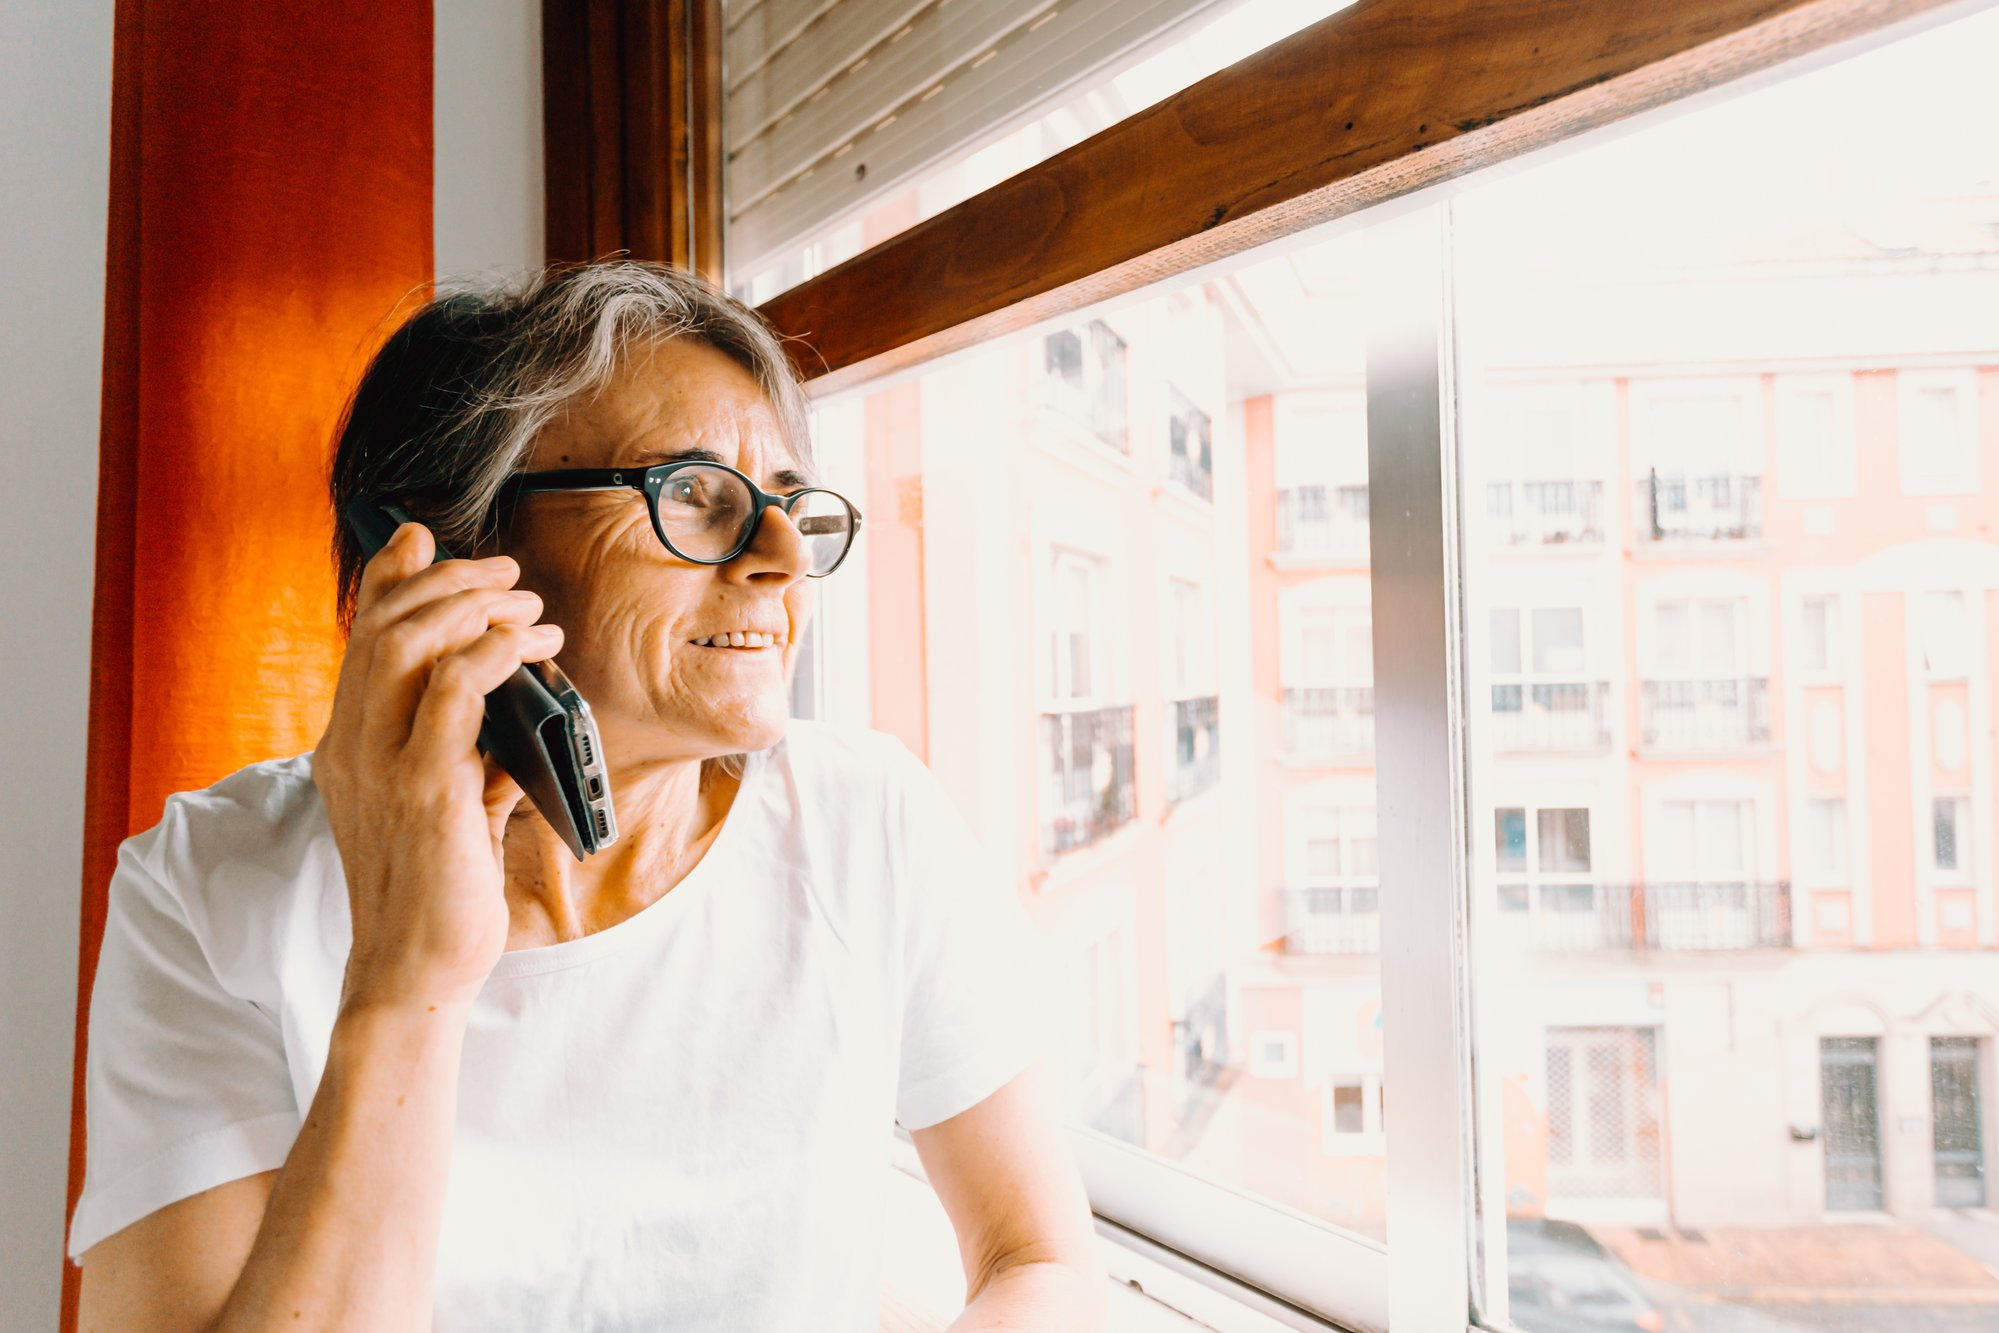 woman in glasses on the phone while looking out a window 戴眼镜的女人一边看窗外一边打电话